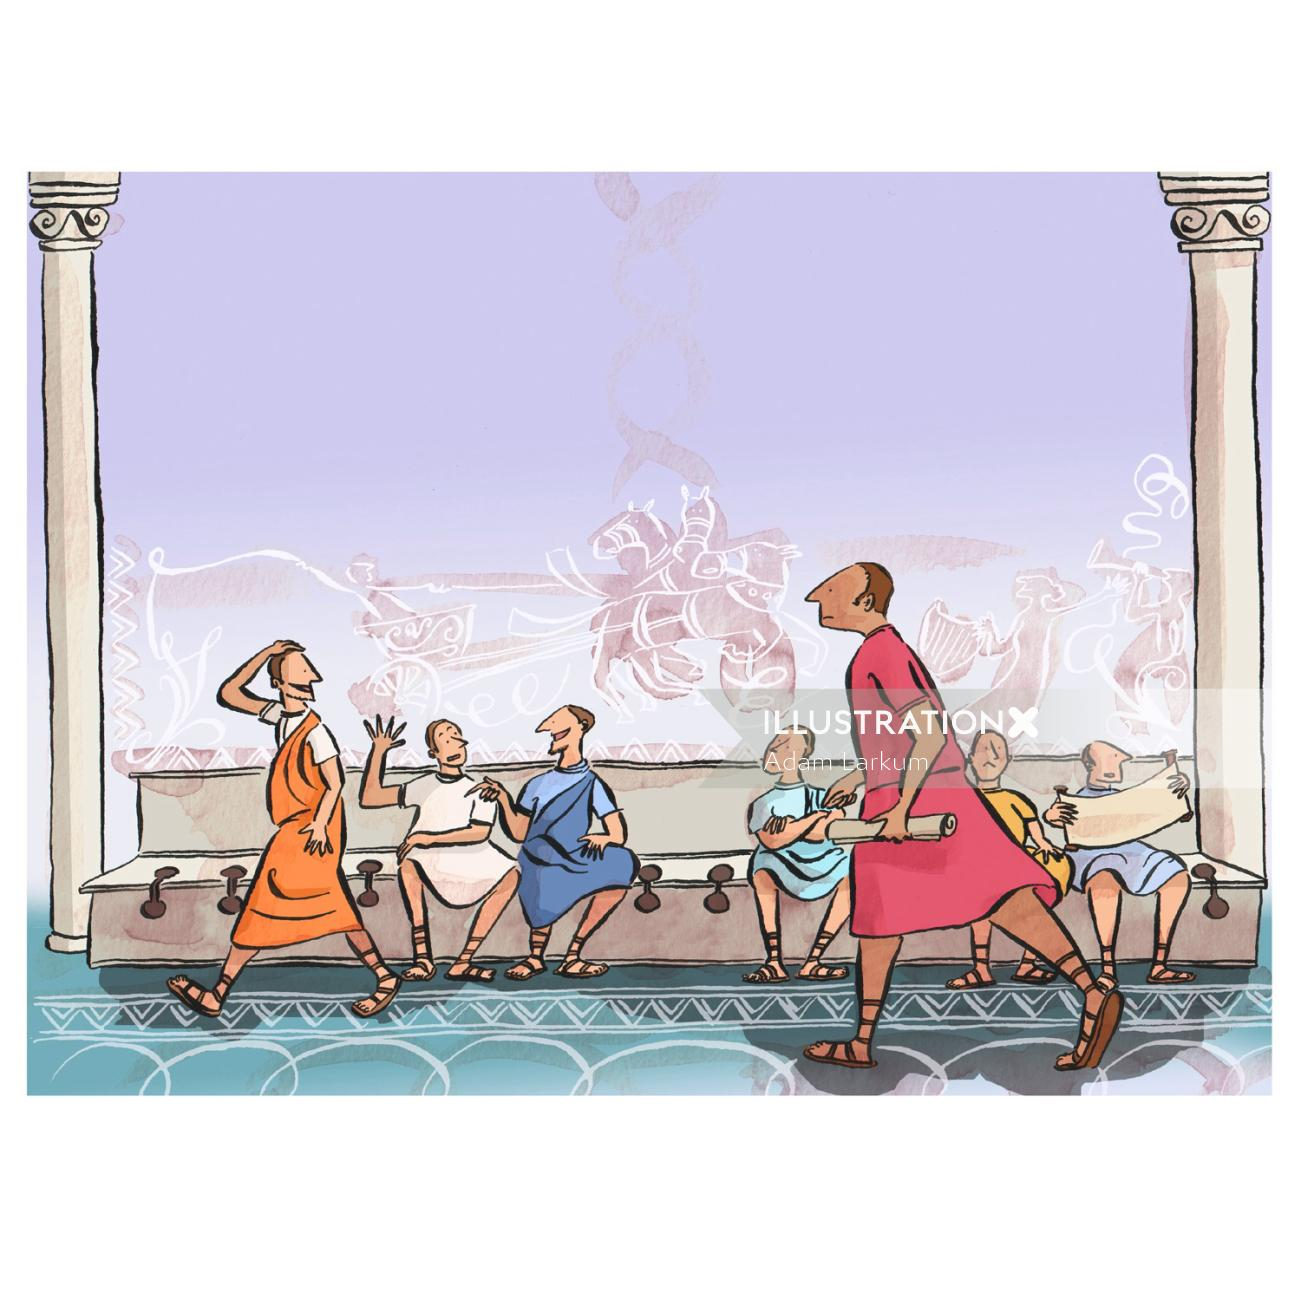 Roman people sitting together